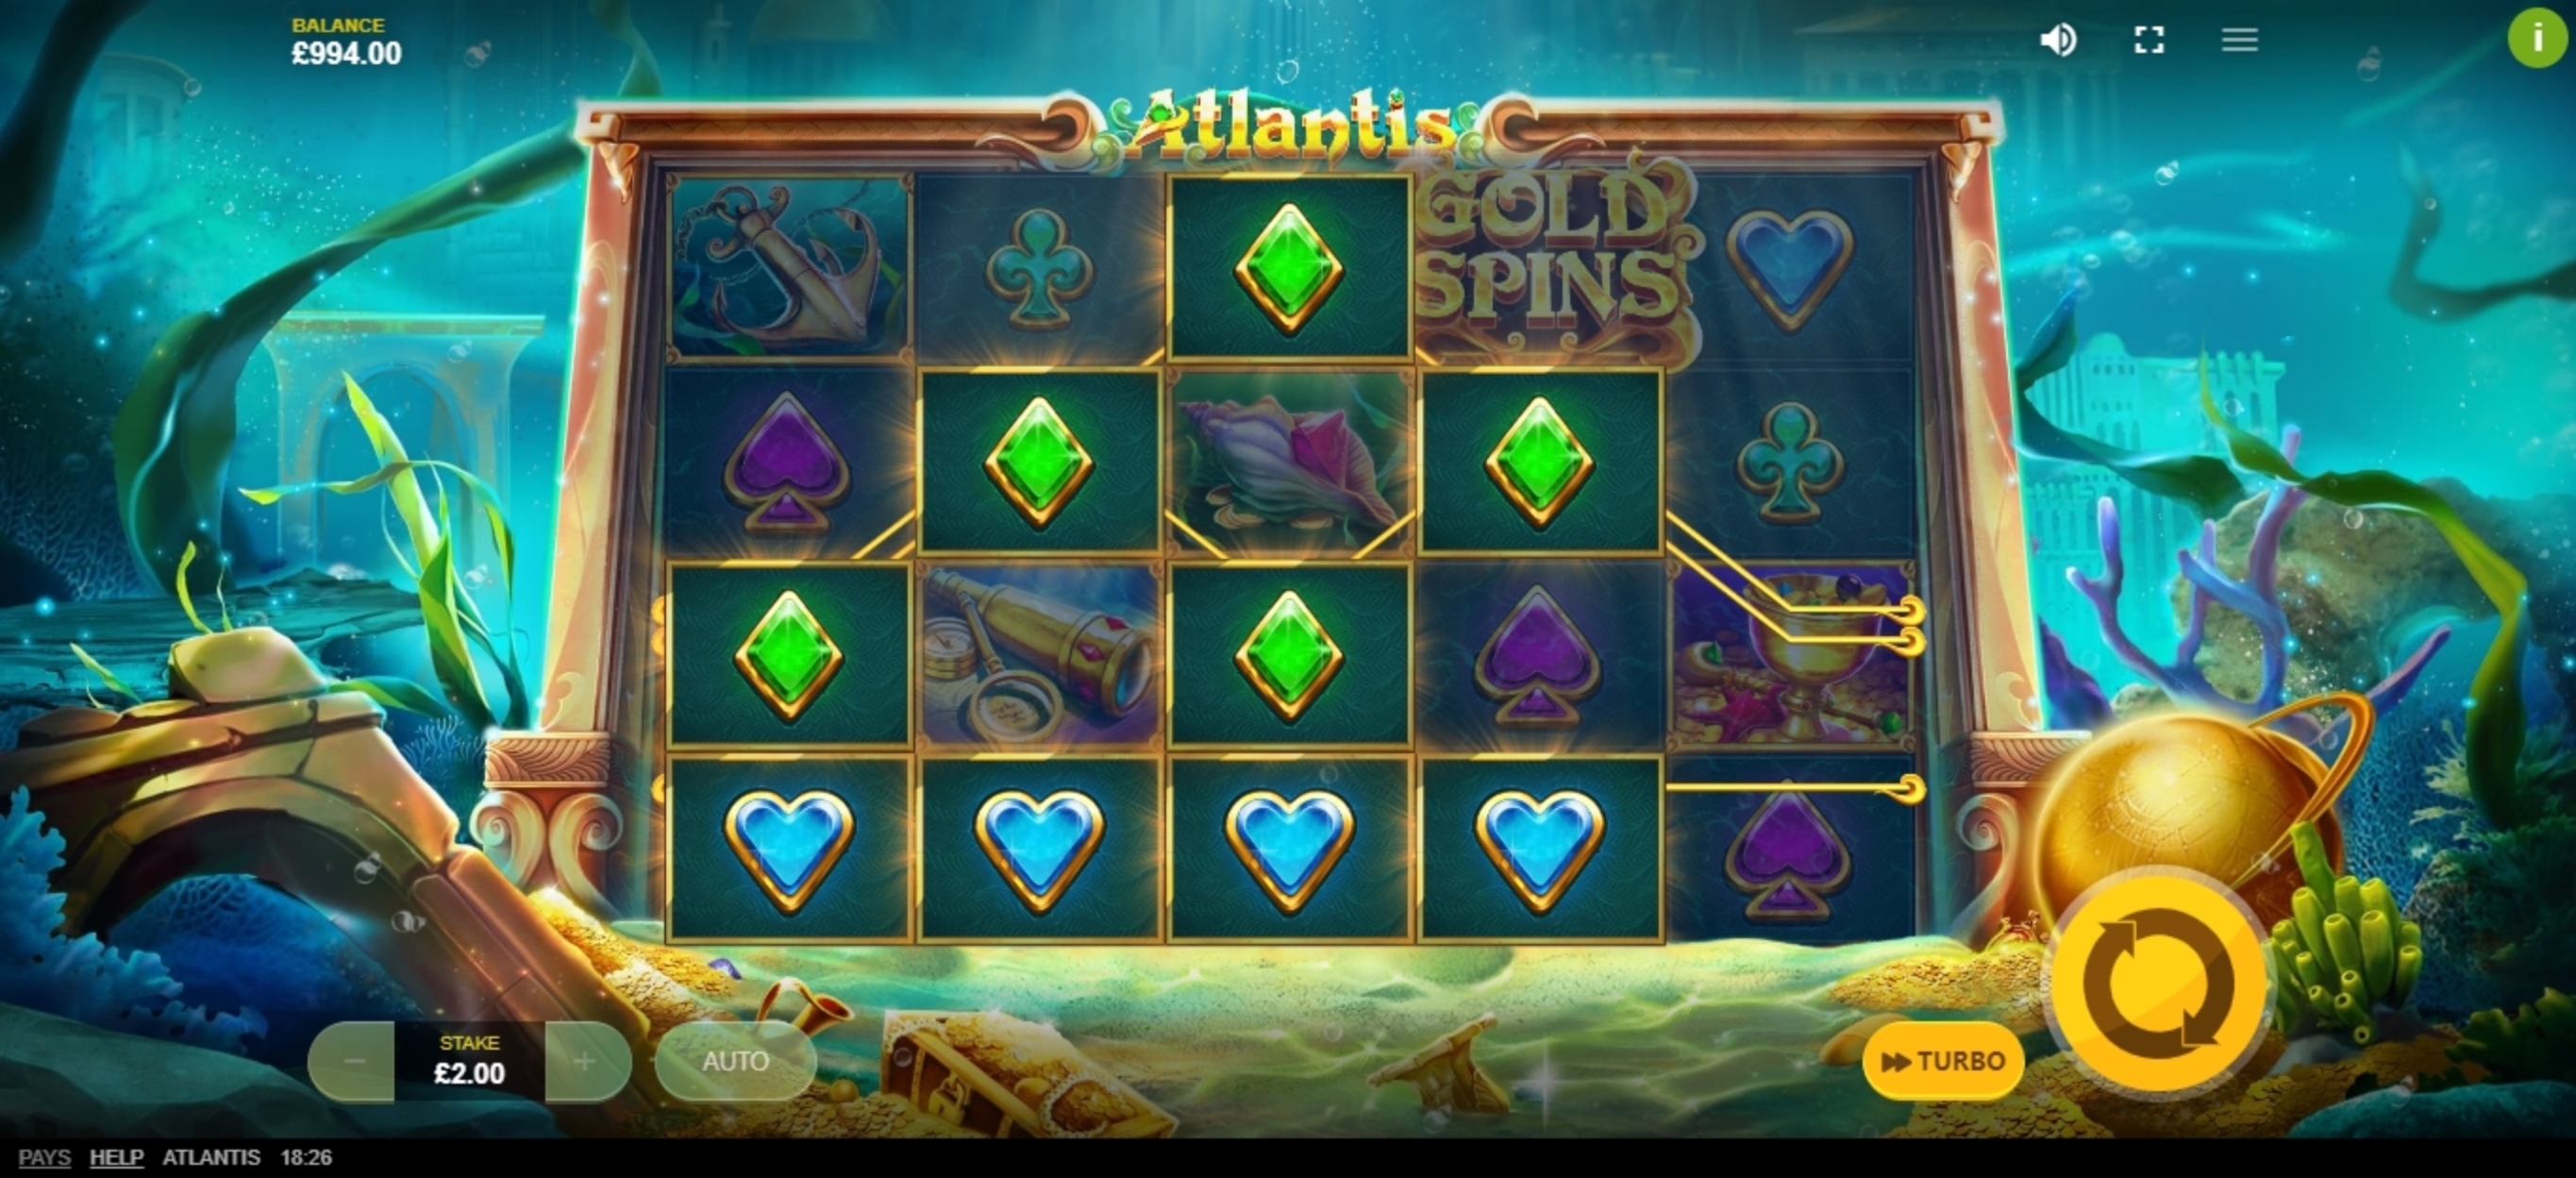 Win Money in Atlantis (Red Tiger) Free Slot Game by Red Tiger